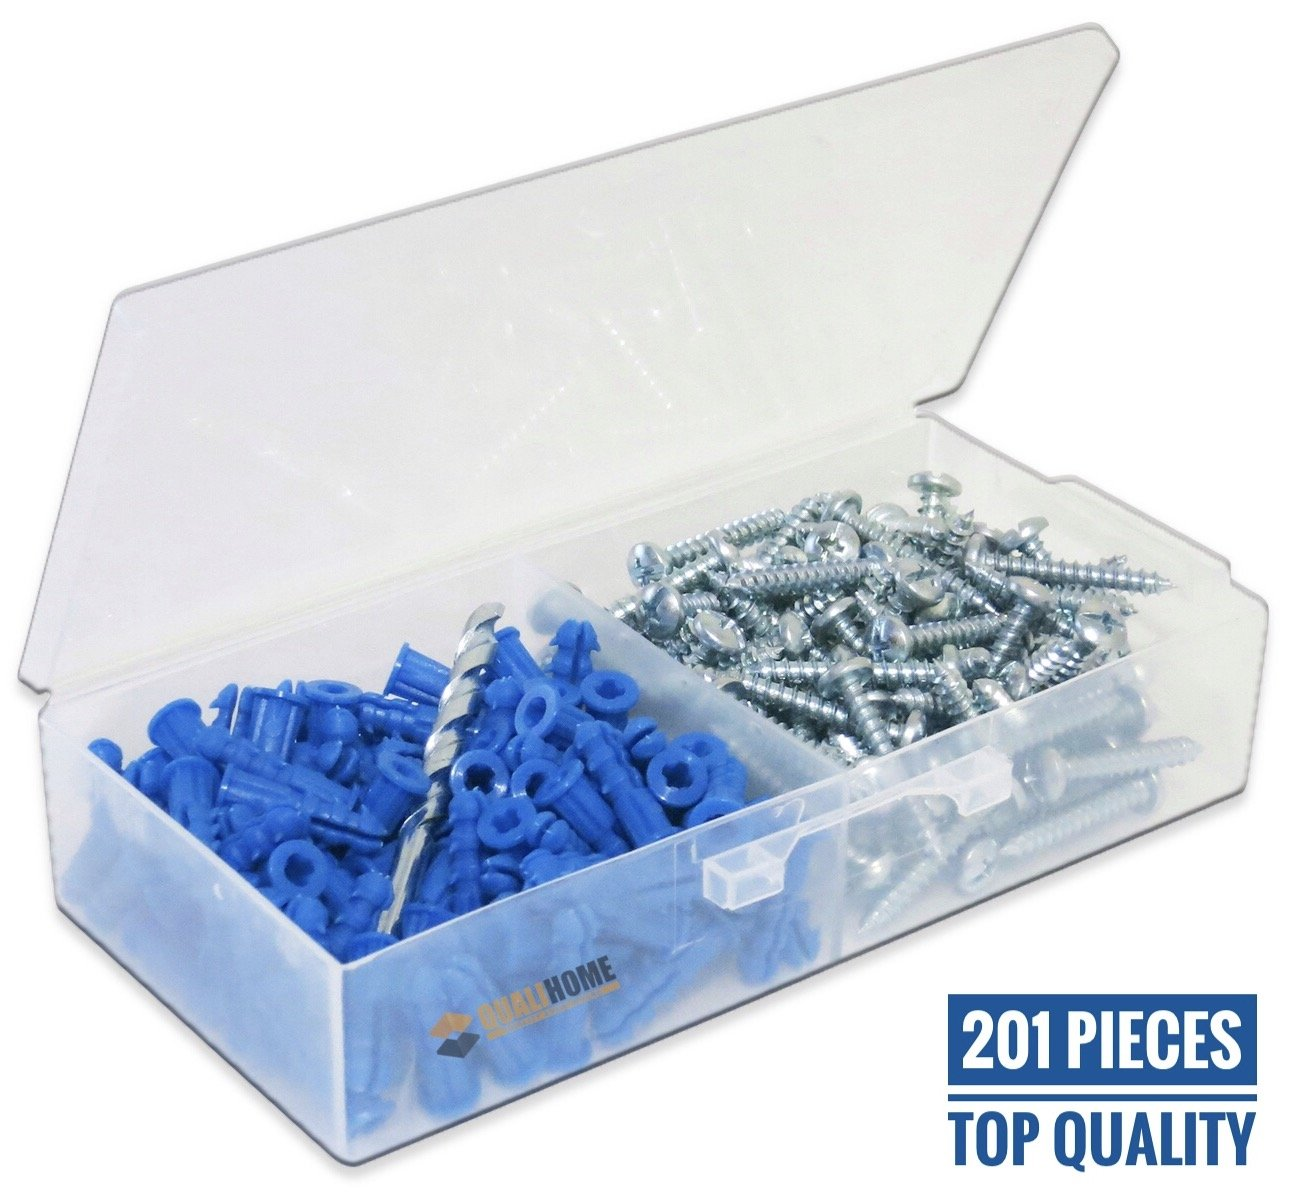 Ribbed Plastic Drywall Anchor Kit with Screws and Masonry Drill Bit, #10-12 x 1''